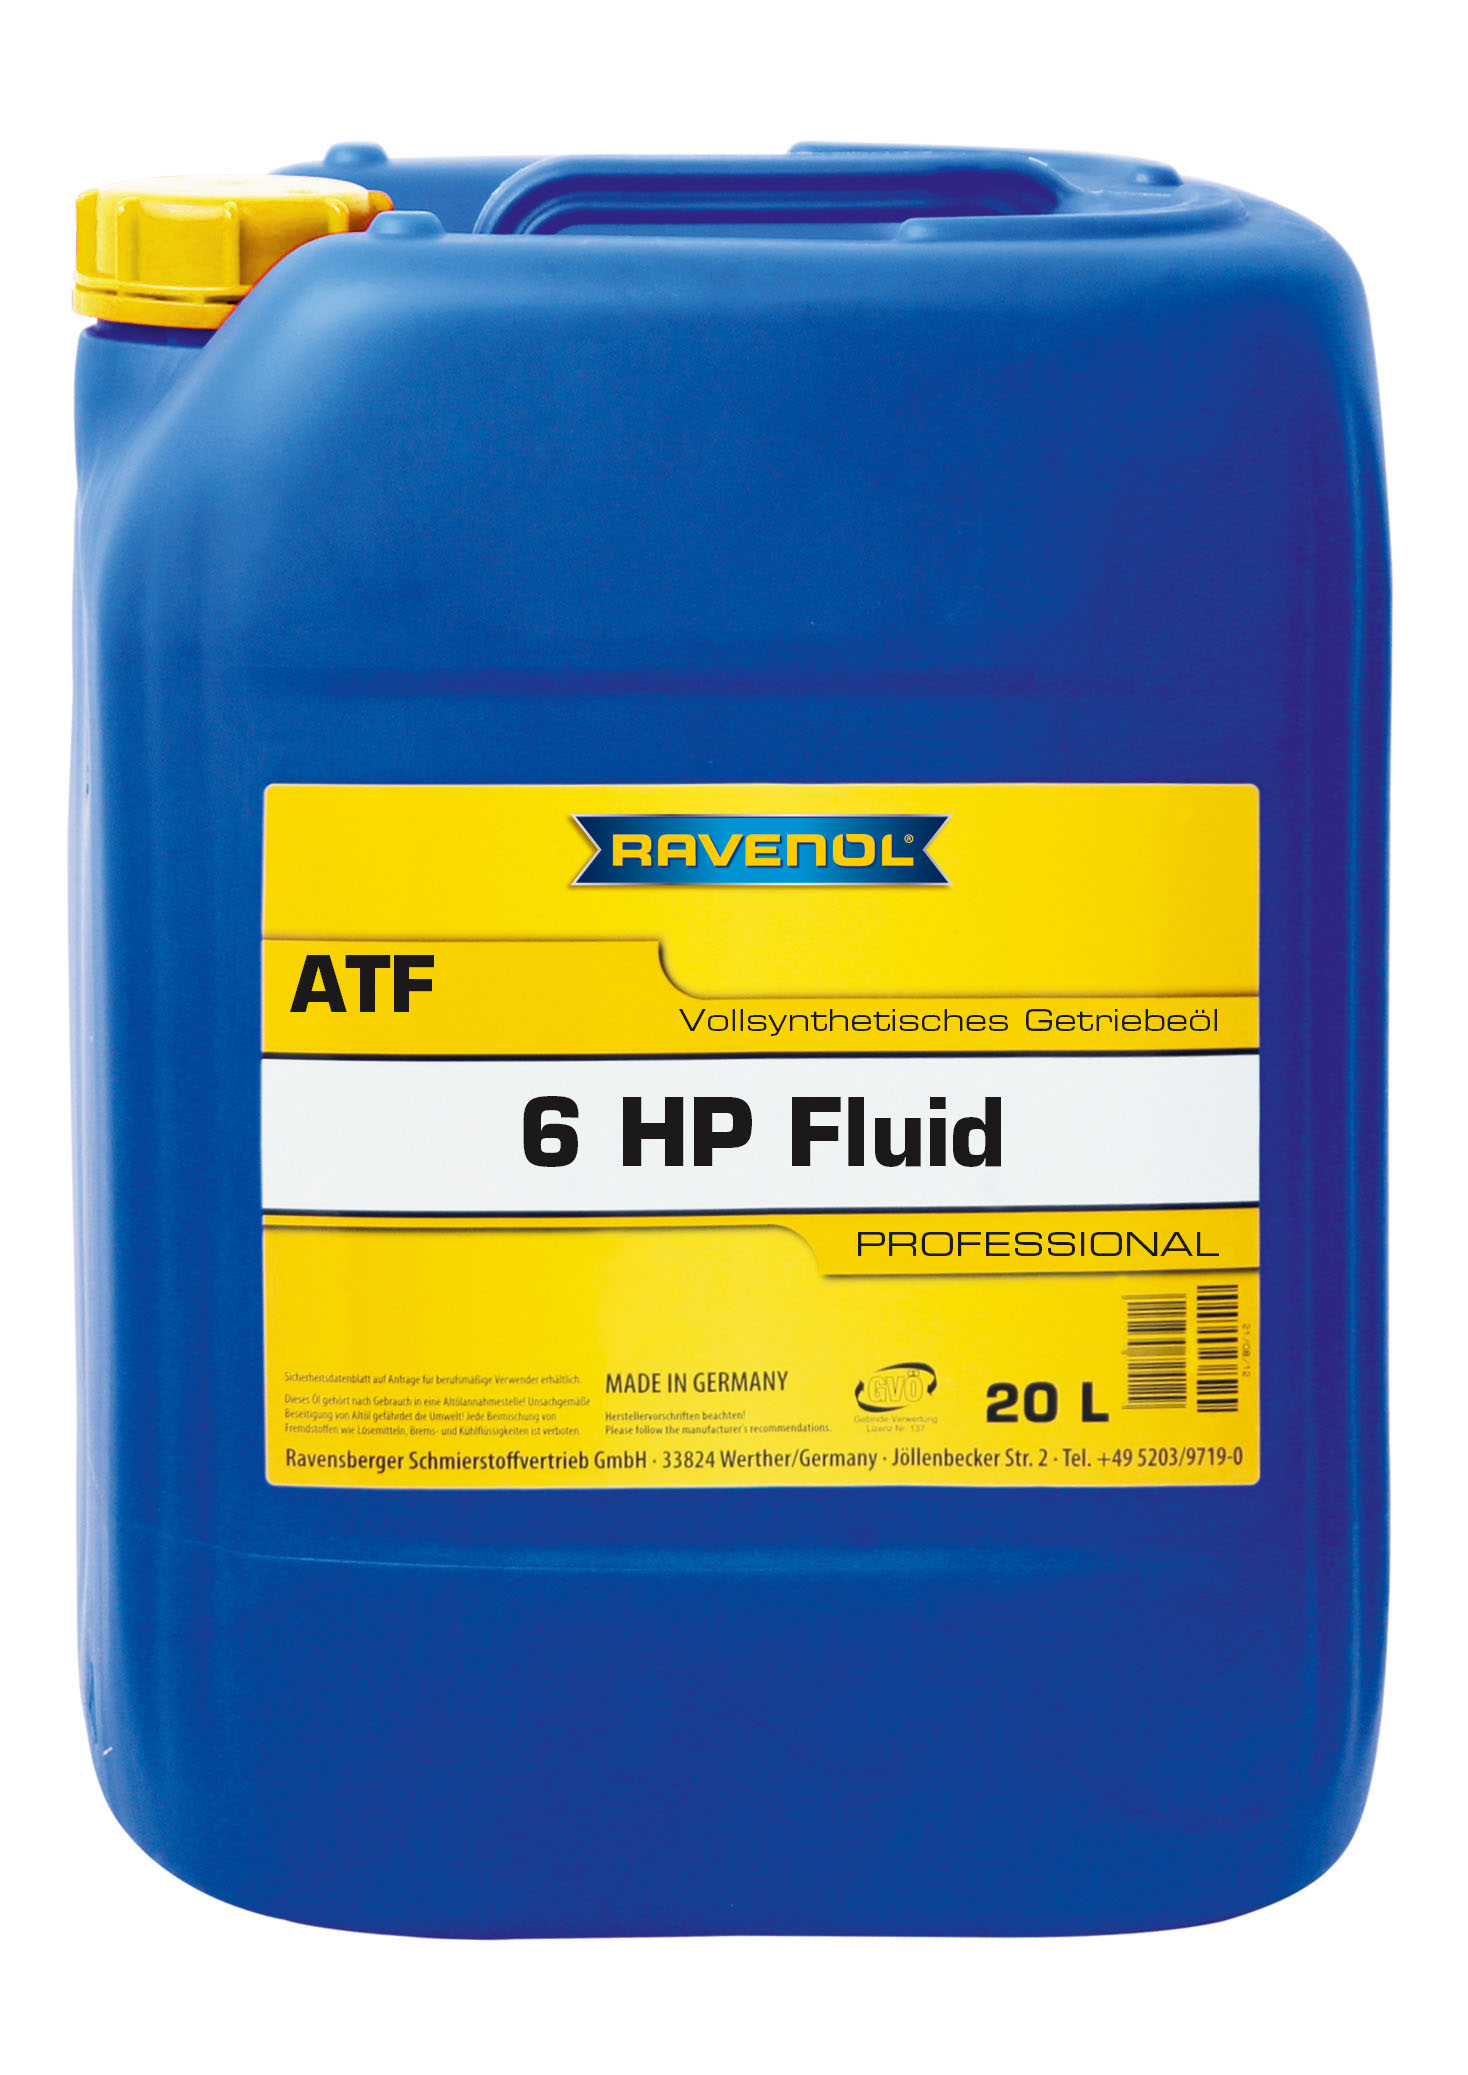 Ravenol ATF 6HP Fluid 20L